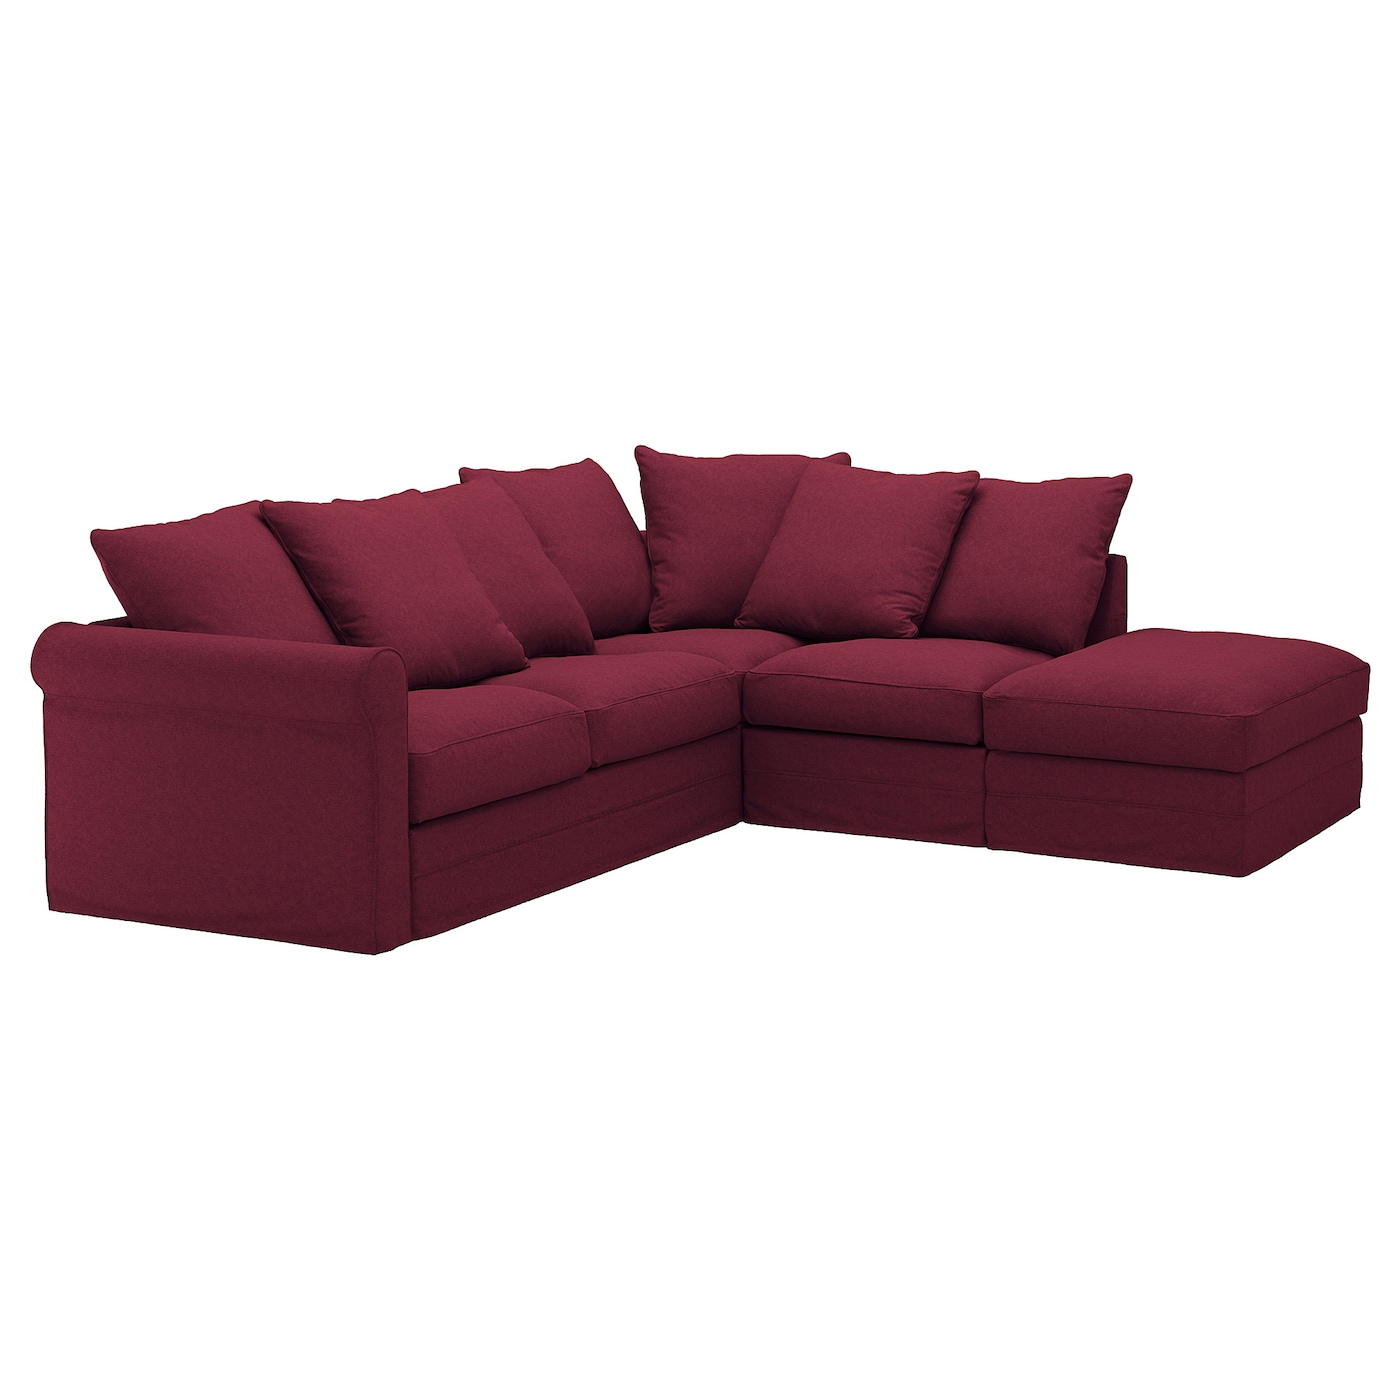 Ikea GrÖnlid Corner Sofa 4 Seat 10 Year Guarantee Read About The Terms